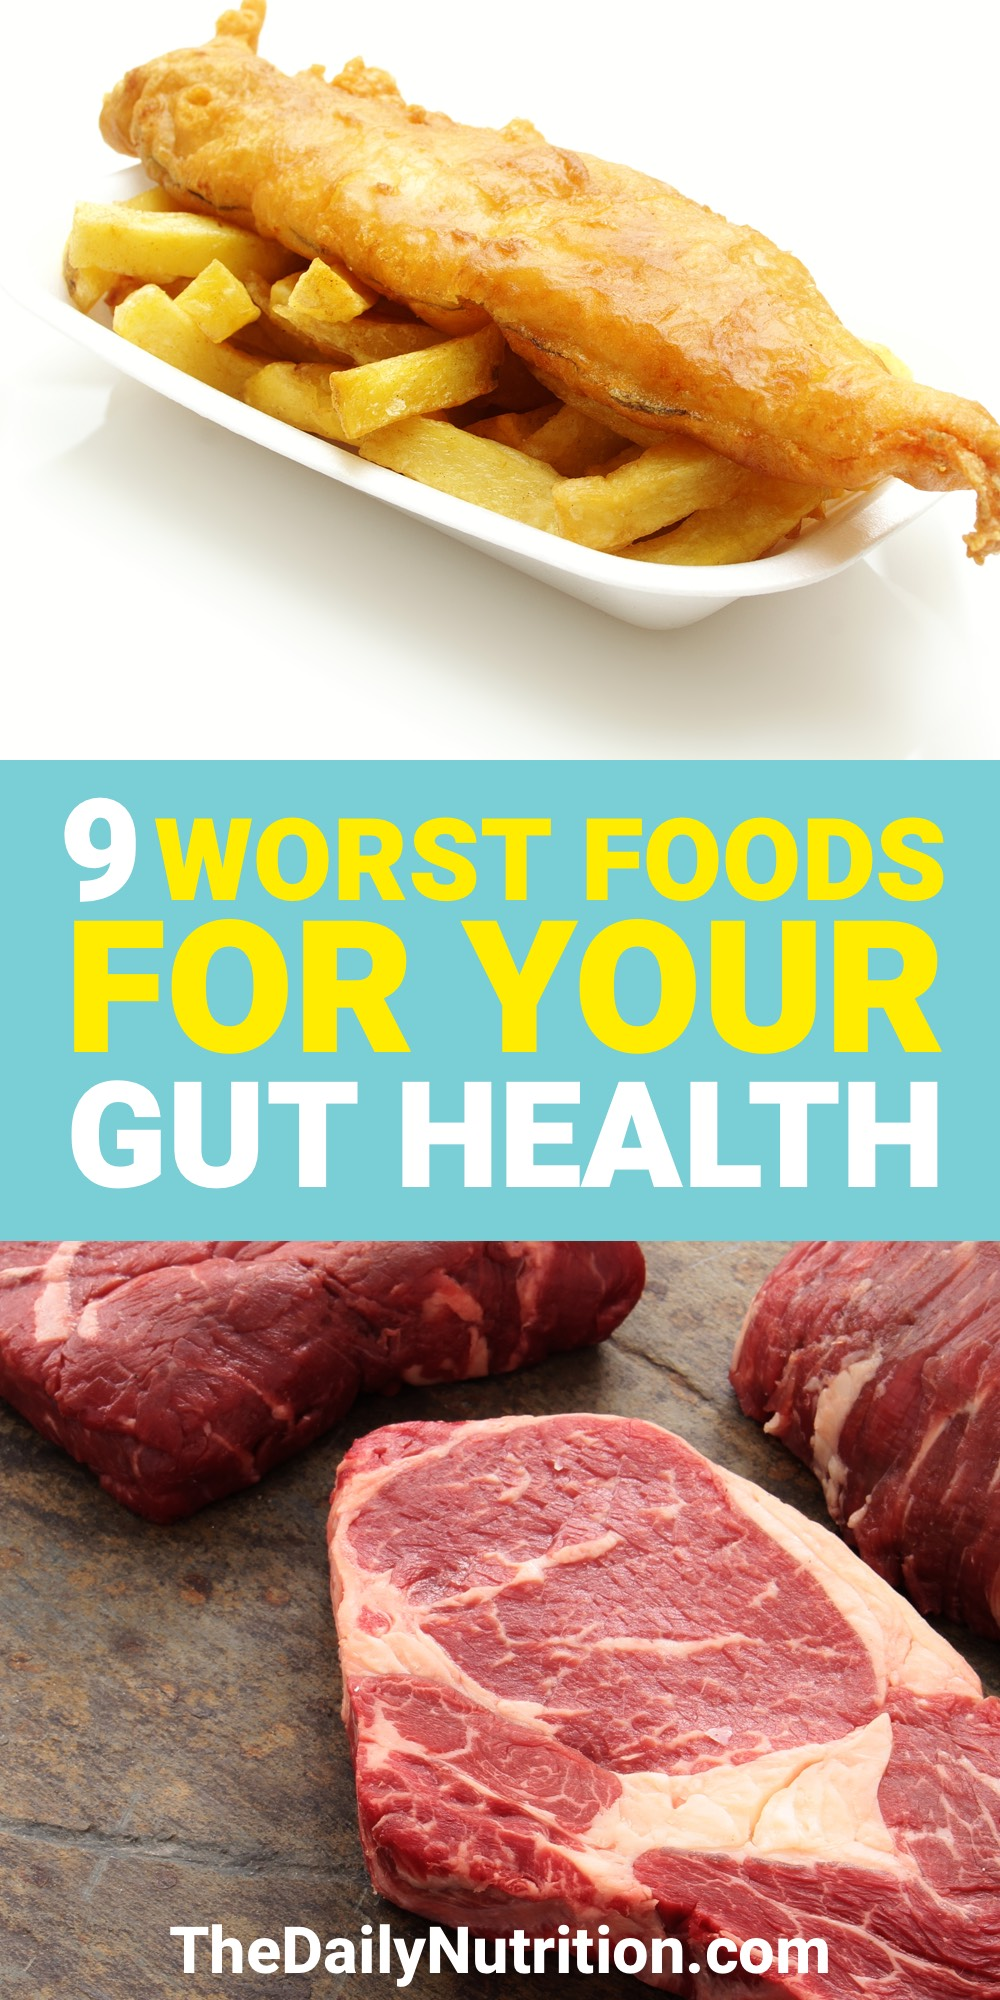 Your gut health can fluctuate based on what you eat. If you want to maintain a healthy gut, here are foods to avoid for gut health.